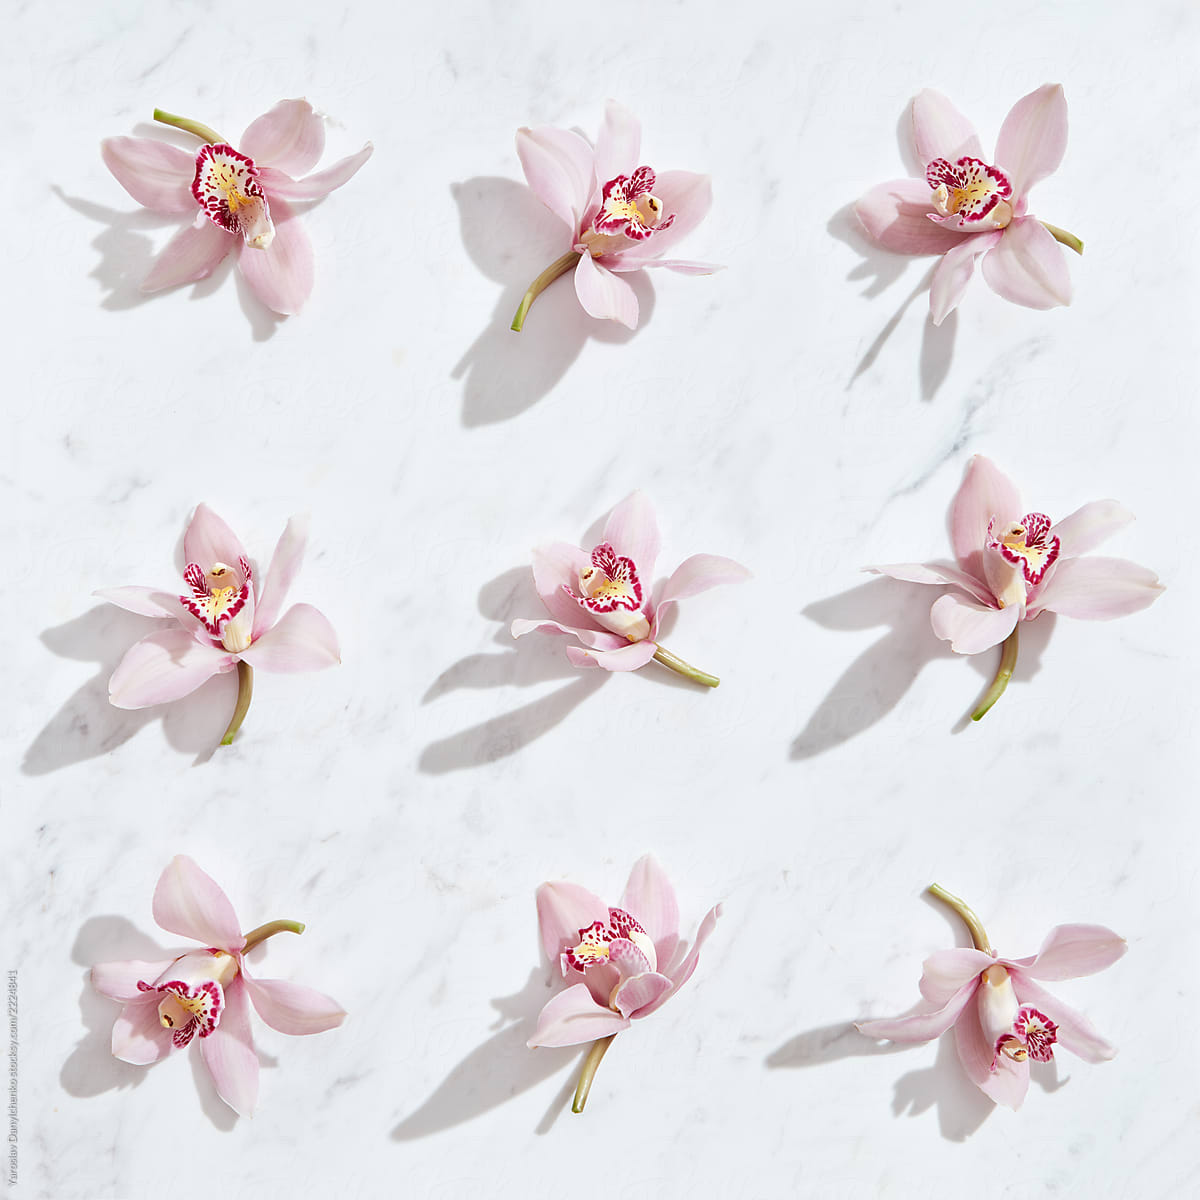 e84f38744191d Tender pink orchids flowers pattern on a gray marble background with shadows.  Top view.